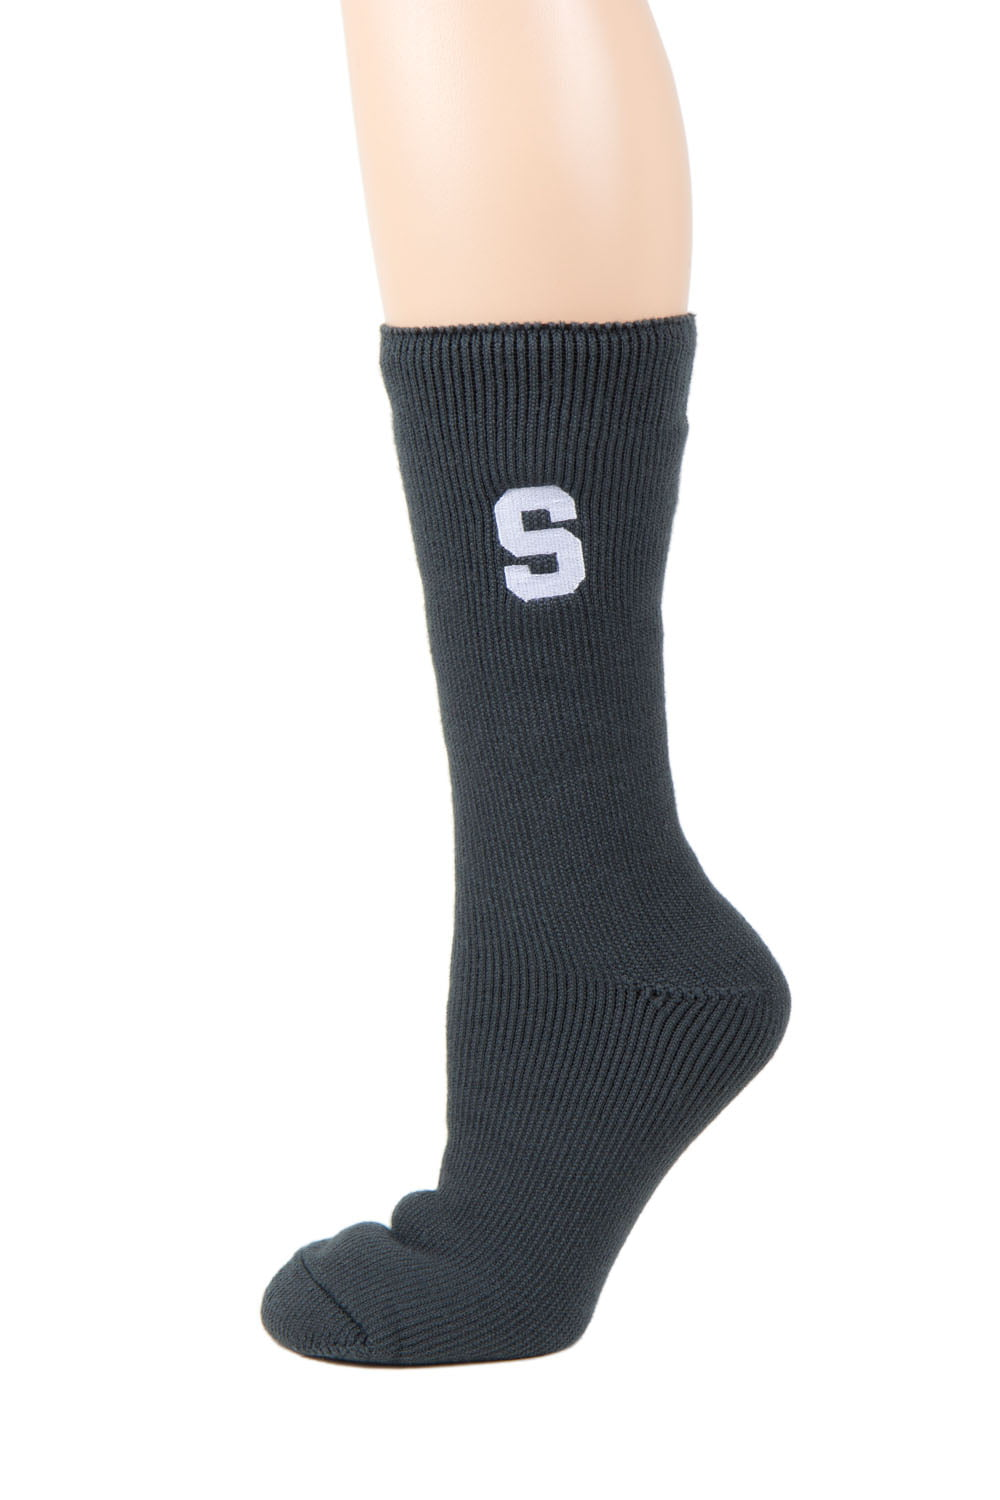 Michigan State Spartans Gray Thermal Sock by Donegal Bay